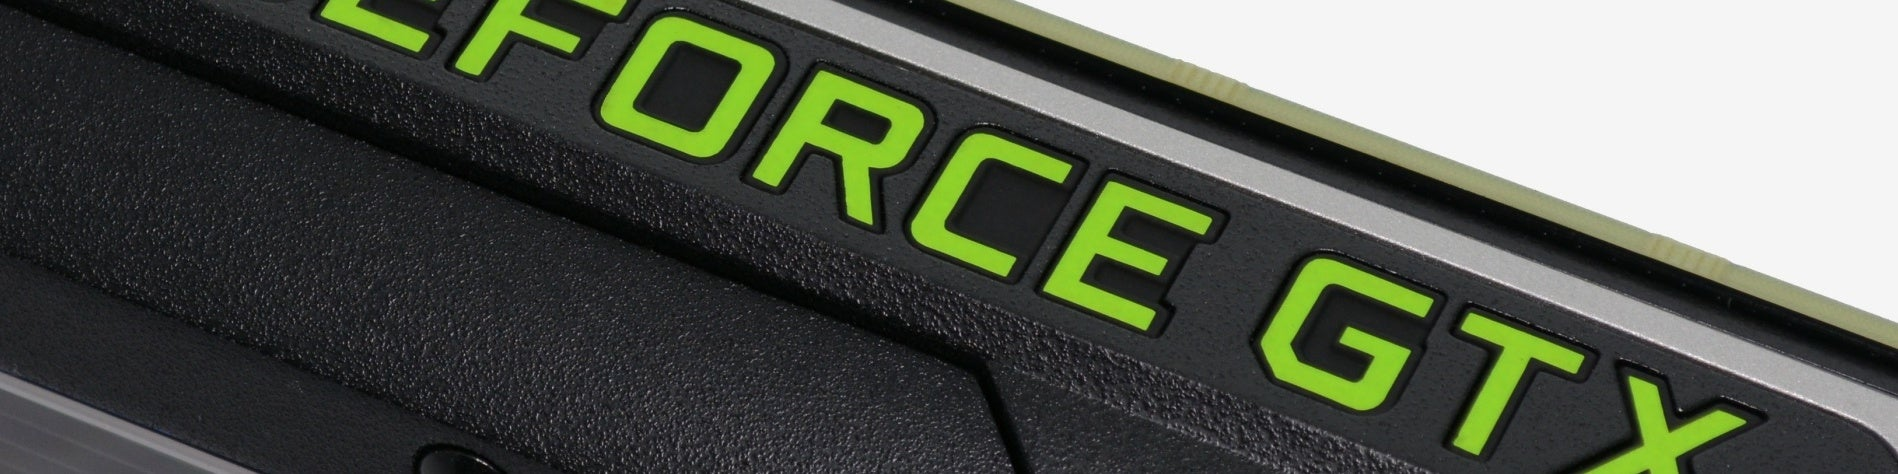 Nvidia GeForce GTX Titan X: Bloody Fast, Surprisingly Efficient